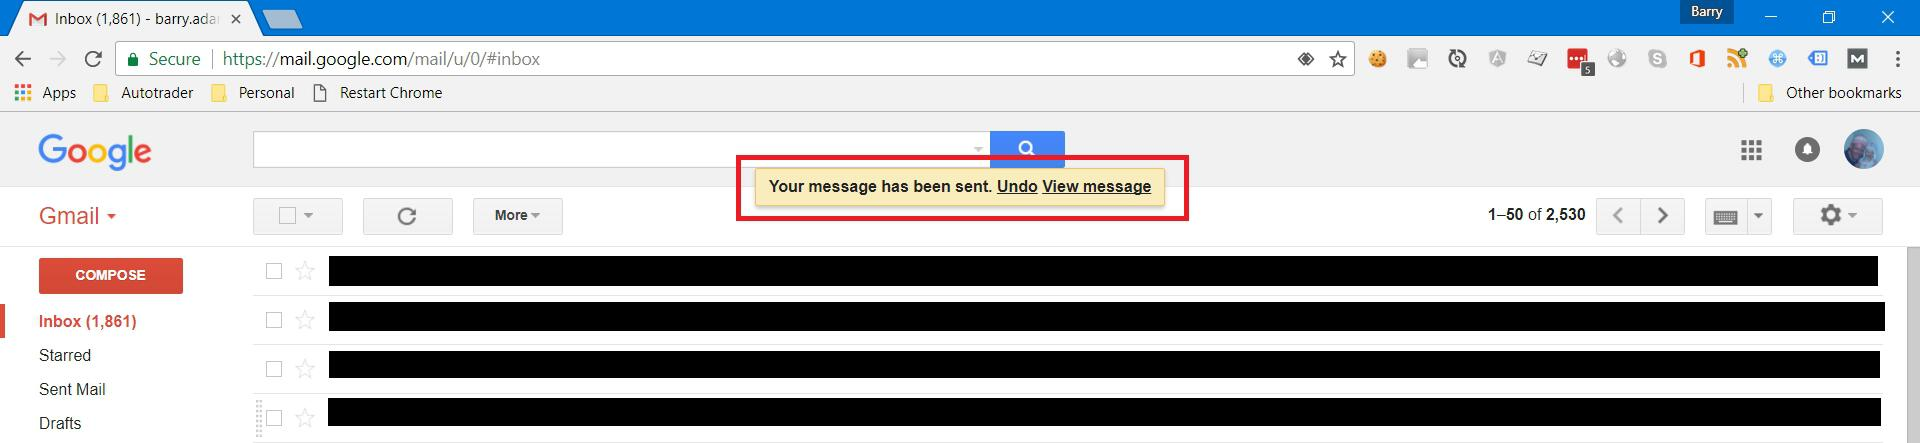 Undo send message in Gmail